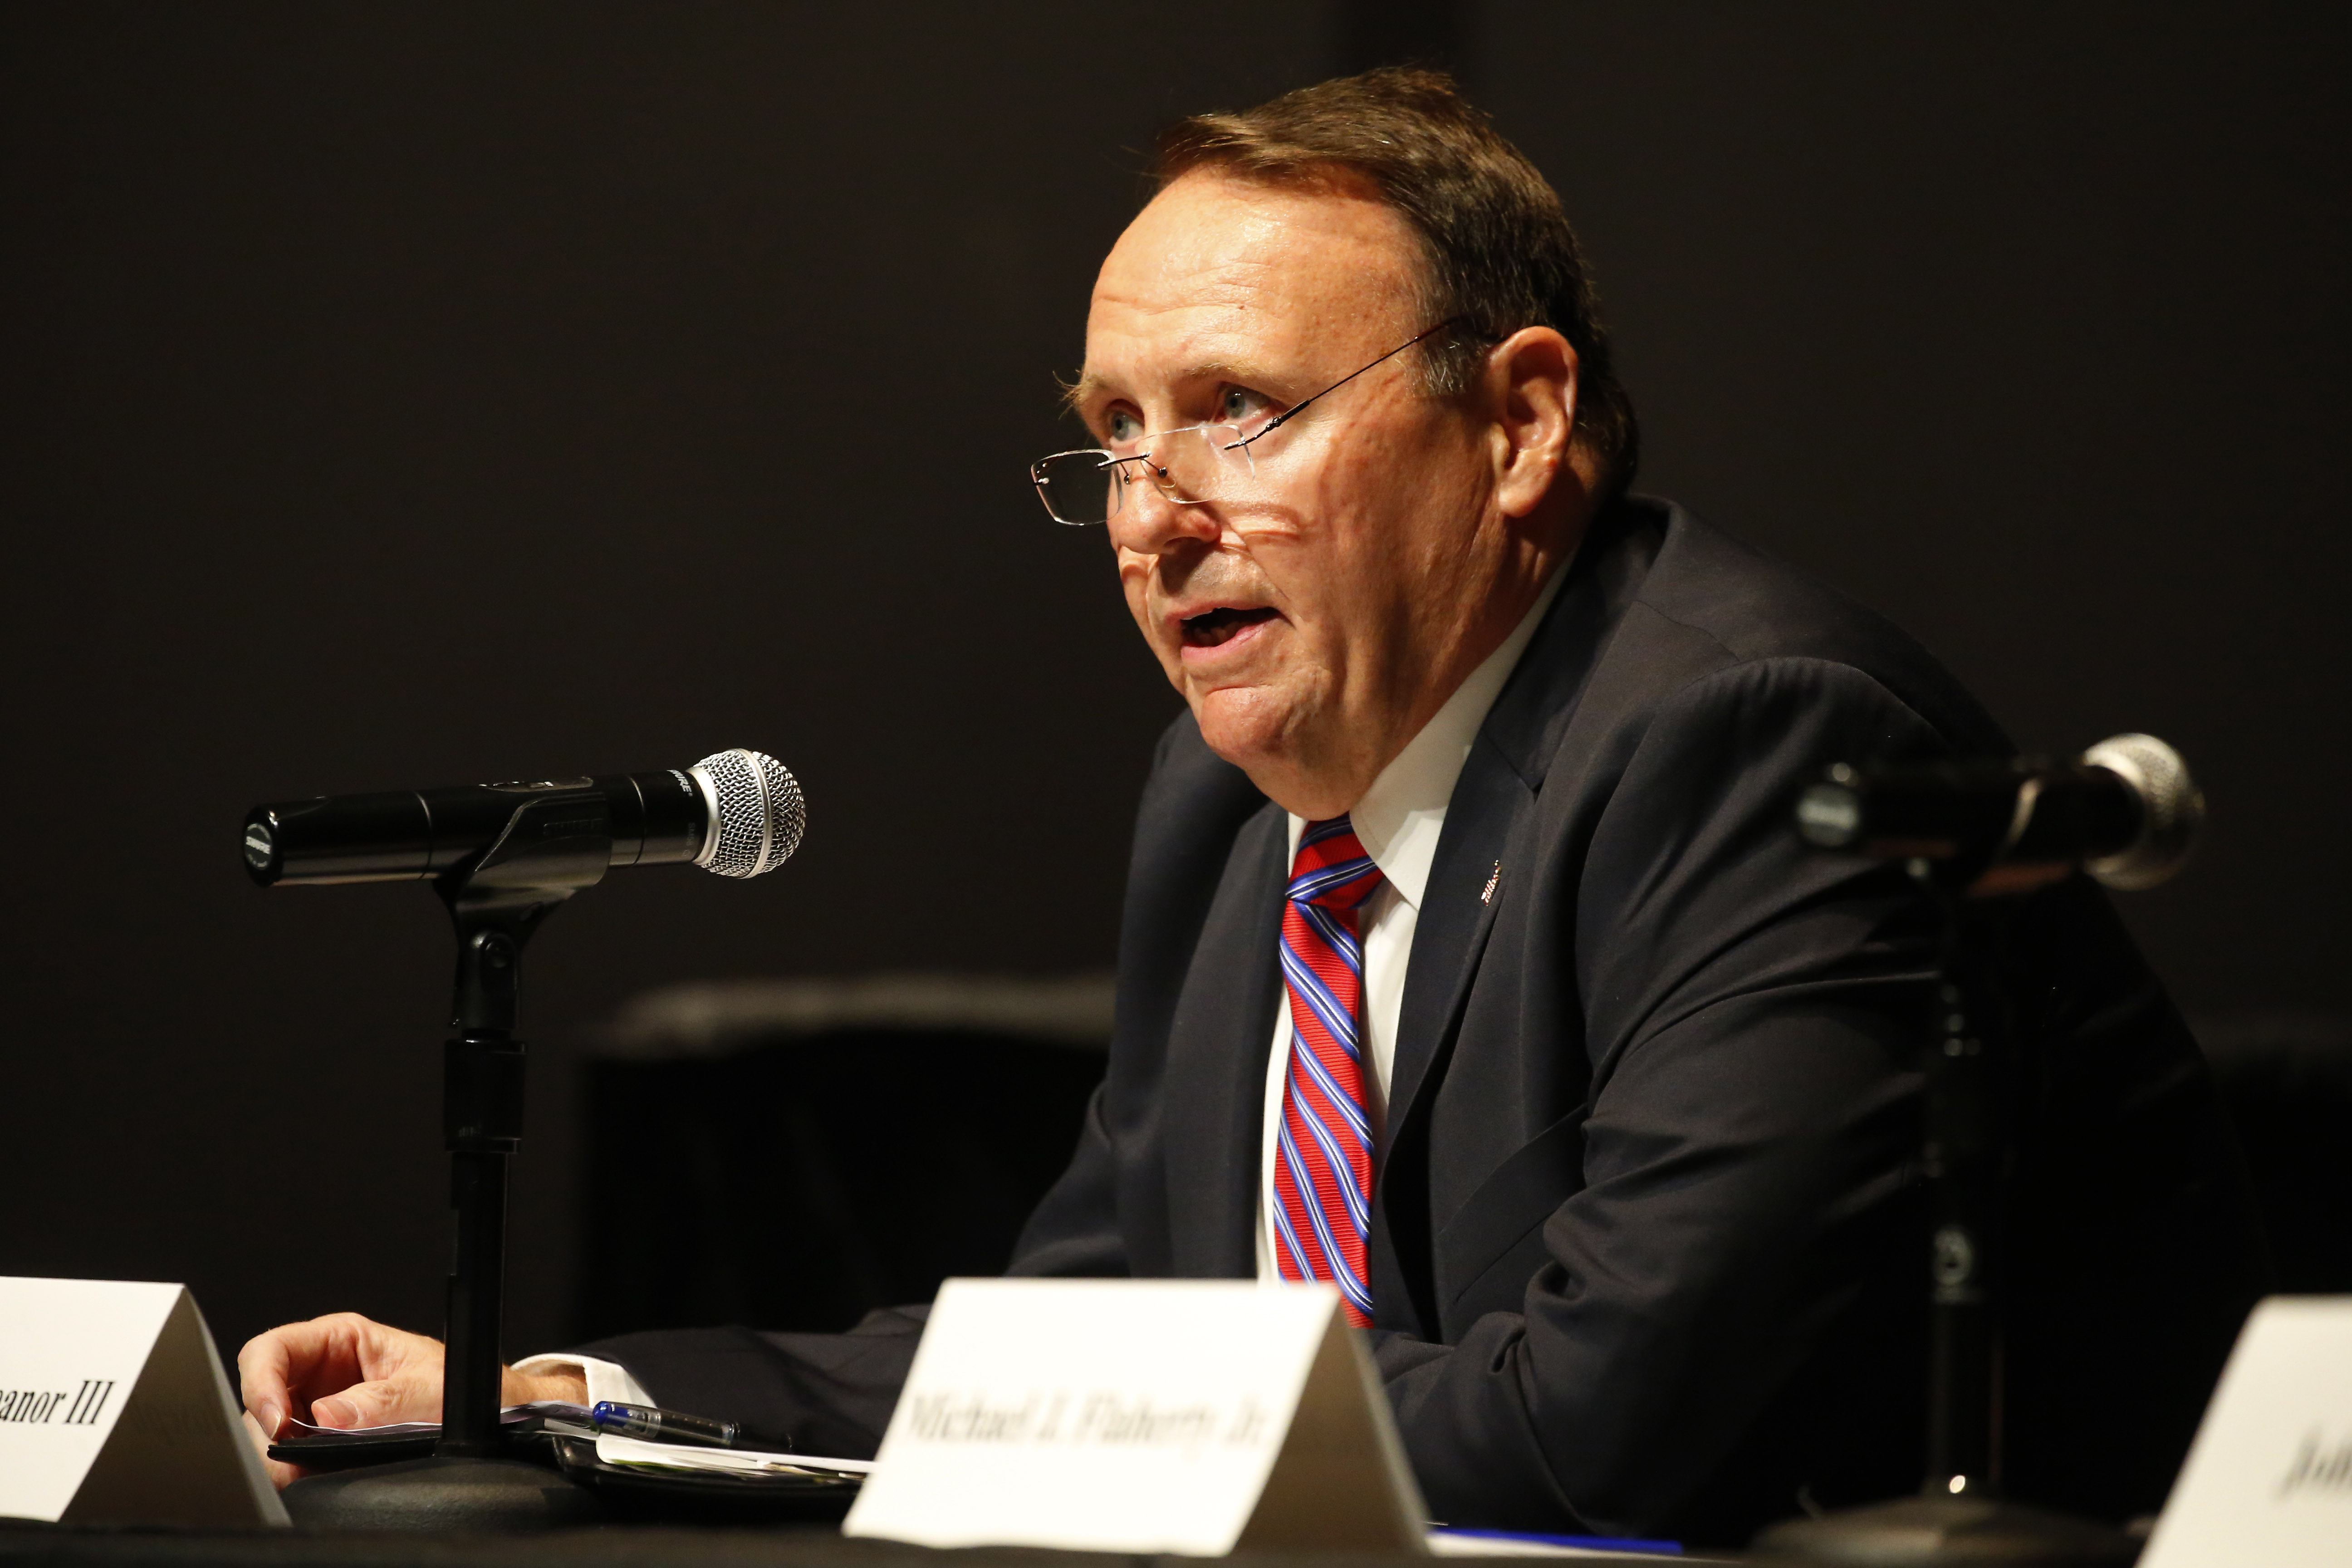 Candidates Joseph V. Treanor III, speaks during the debate for District Attorney at the Burchfield Penny Arts Center in Buffalo Thursday, August 24, 2016. (Mark Mulville/Buffalo News)